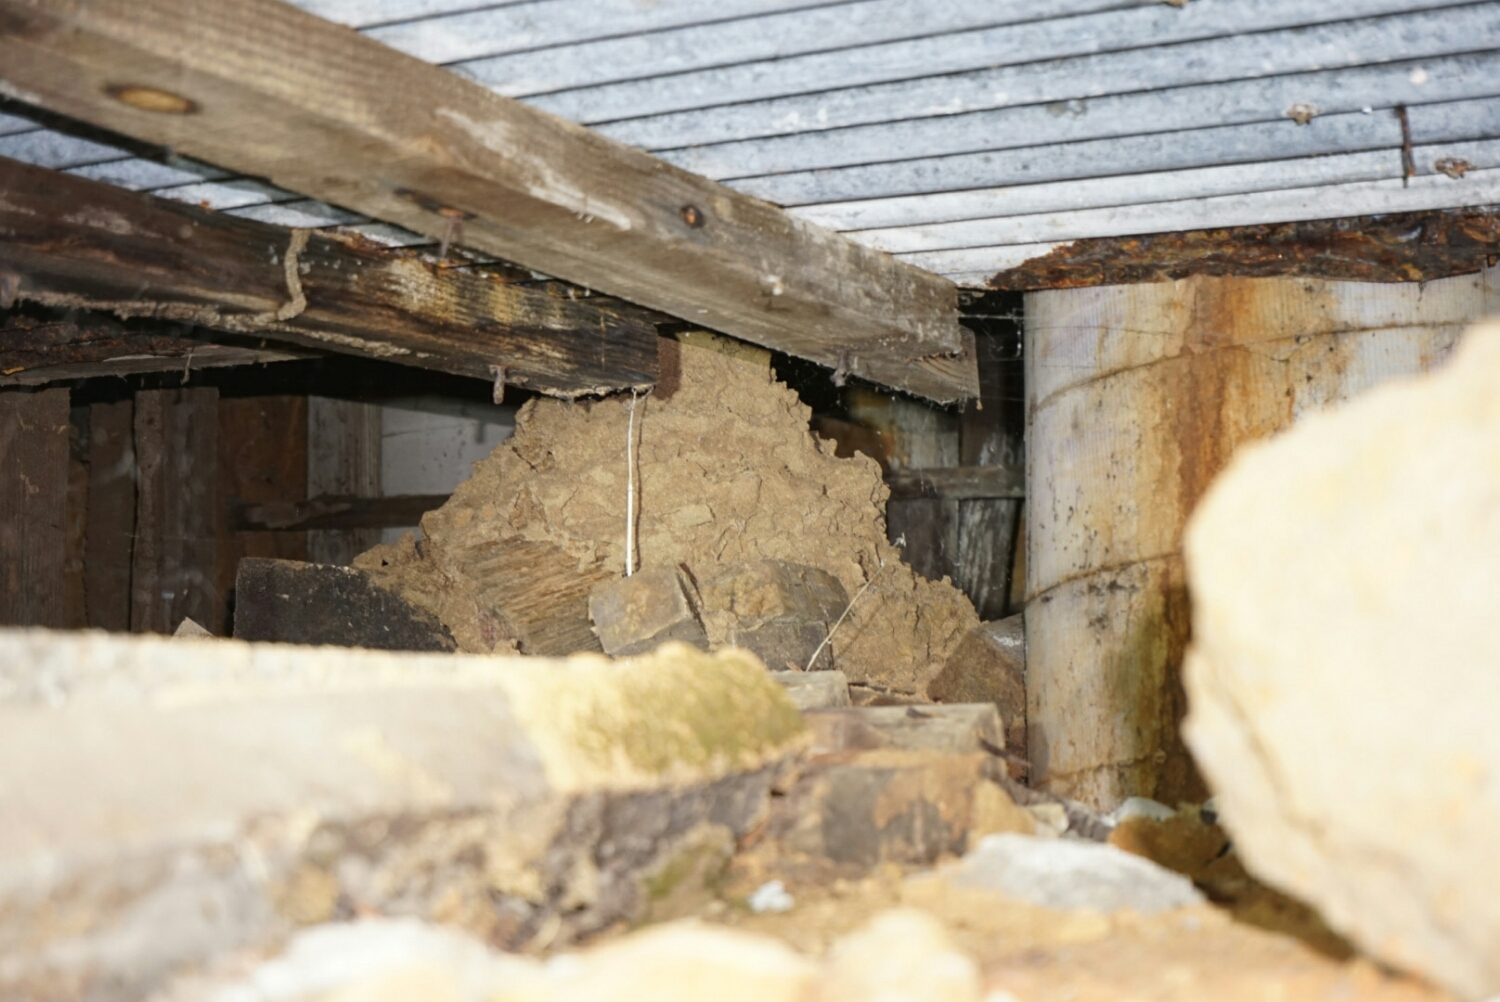 This large entry point for termites may seem obvious, but requires a thorough search in a tight subfloor space to locate. Also, having large amounts of unnecessary timber in the subfloor is just an open invitation for termites. This was discovered in a building where previous inspectors had failed to note the threat to the building.